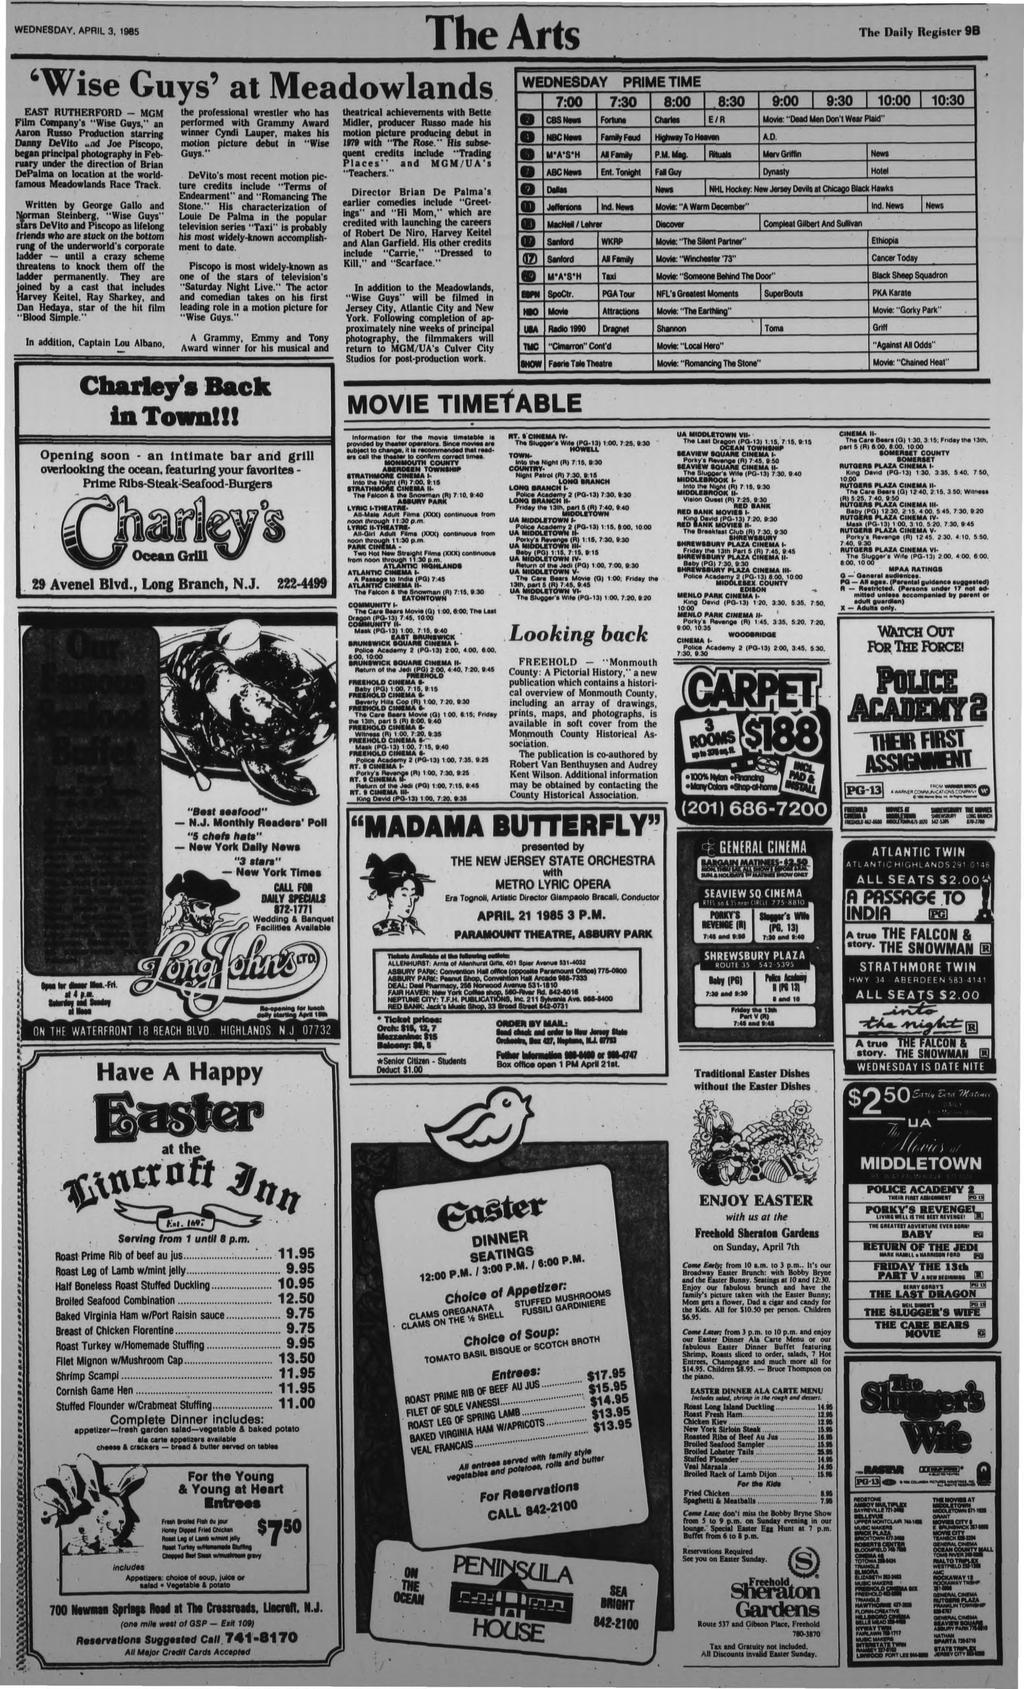 The Daily Register Your Hometown Newspaper Since Pdf Ocean Park Fast Track Admission Package Anak 3 11 Thn Wednesday Aprl 1965 Wise Guys A Eadowlands East Rutherford G